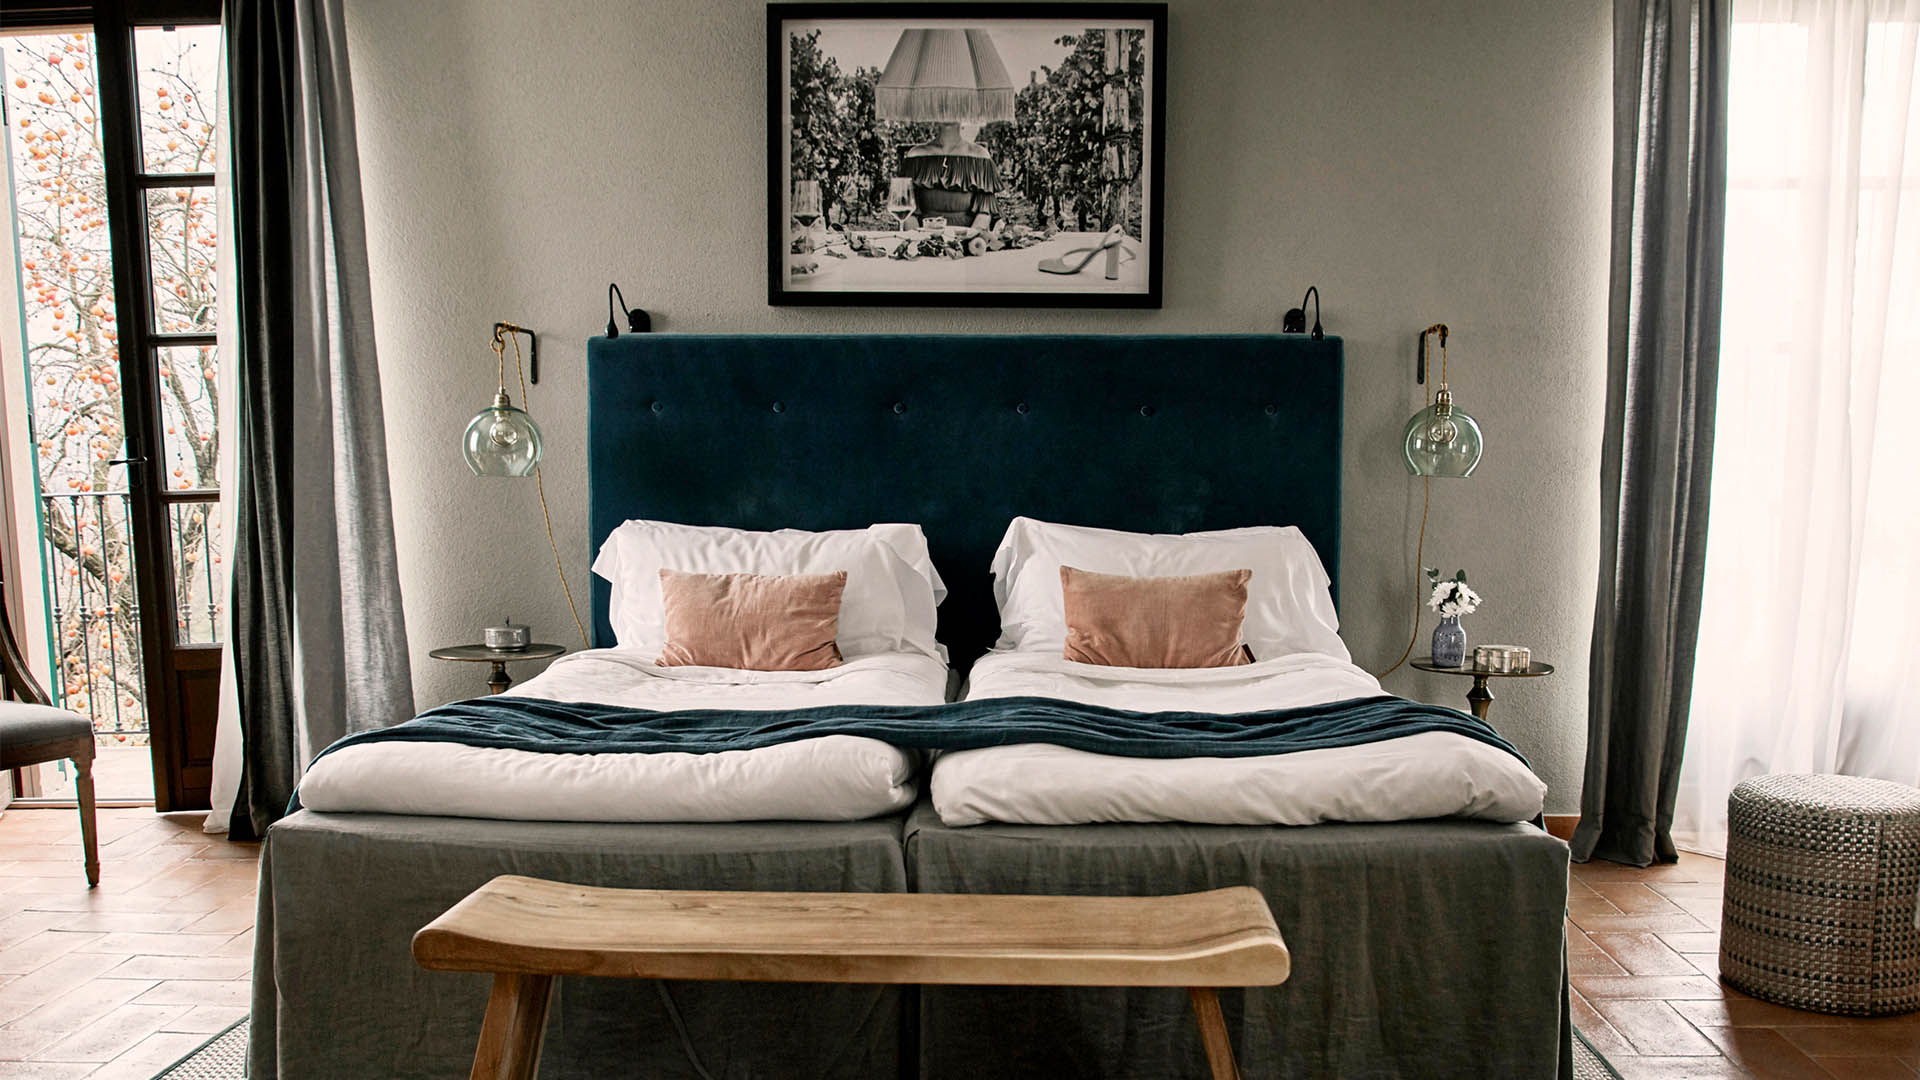 6 of Europe's Most Beautiful Bedrooms